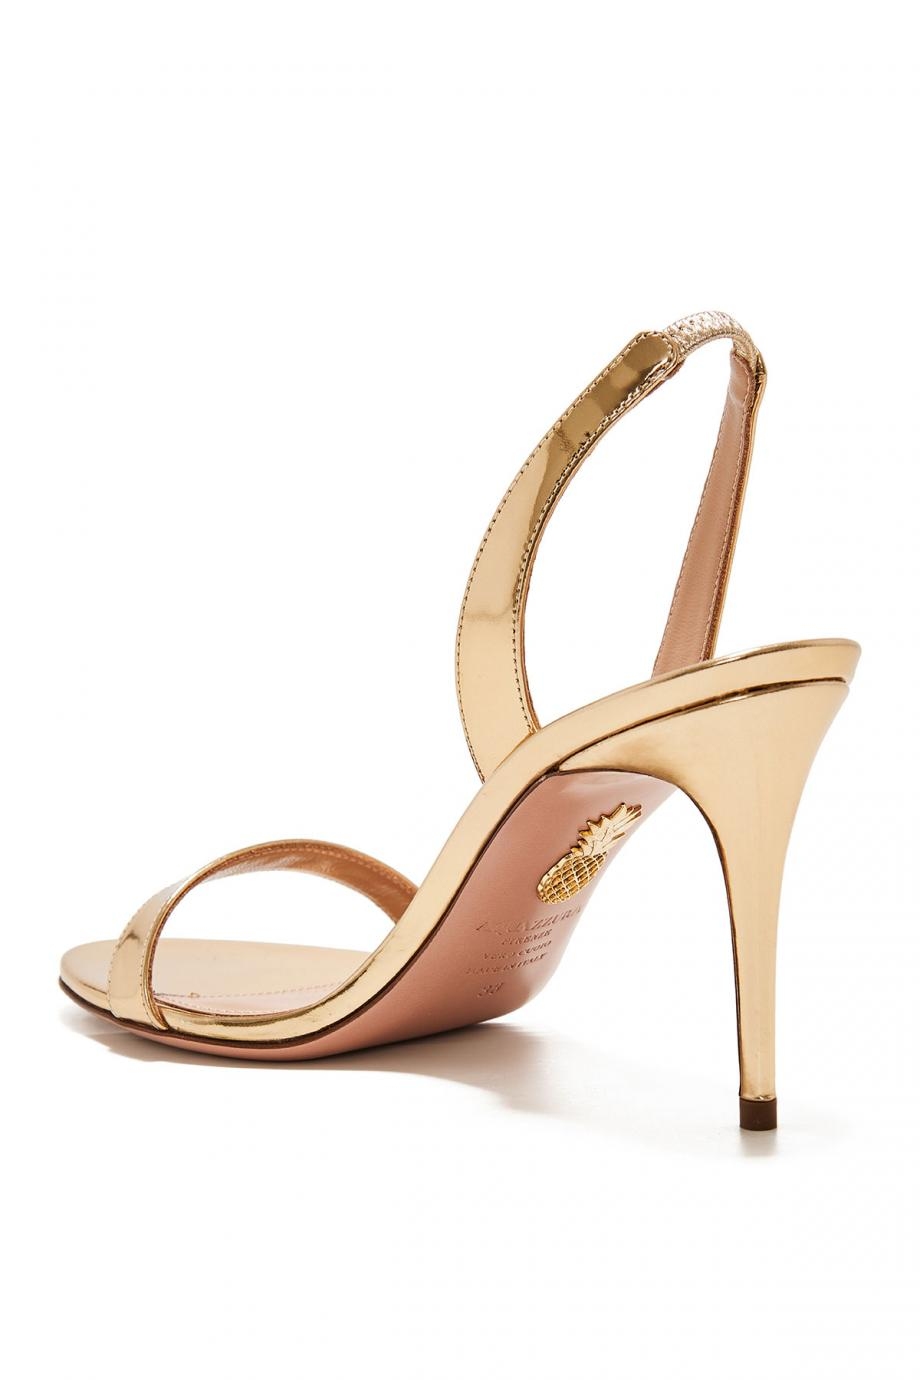 So Nude mirrored leather sandals